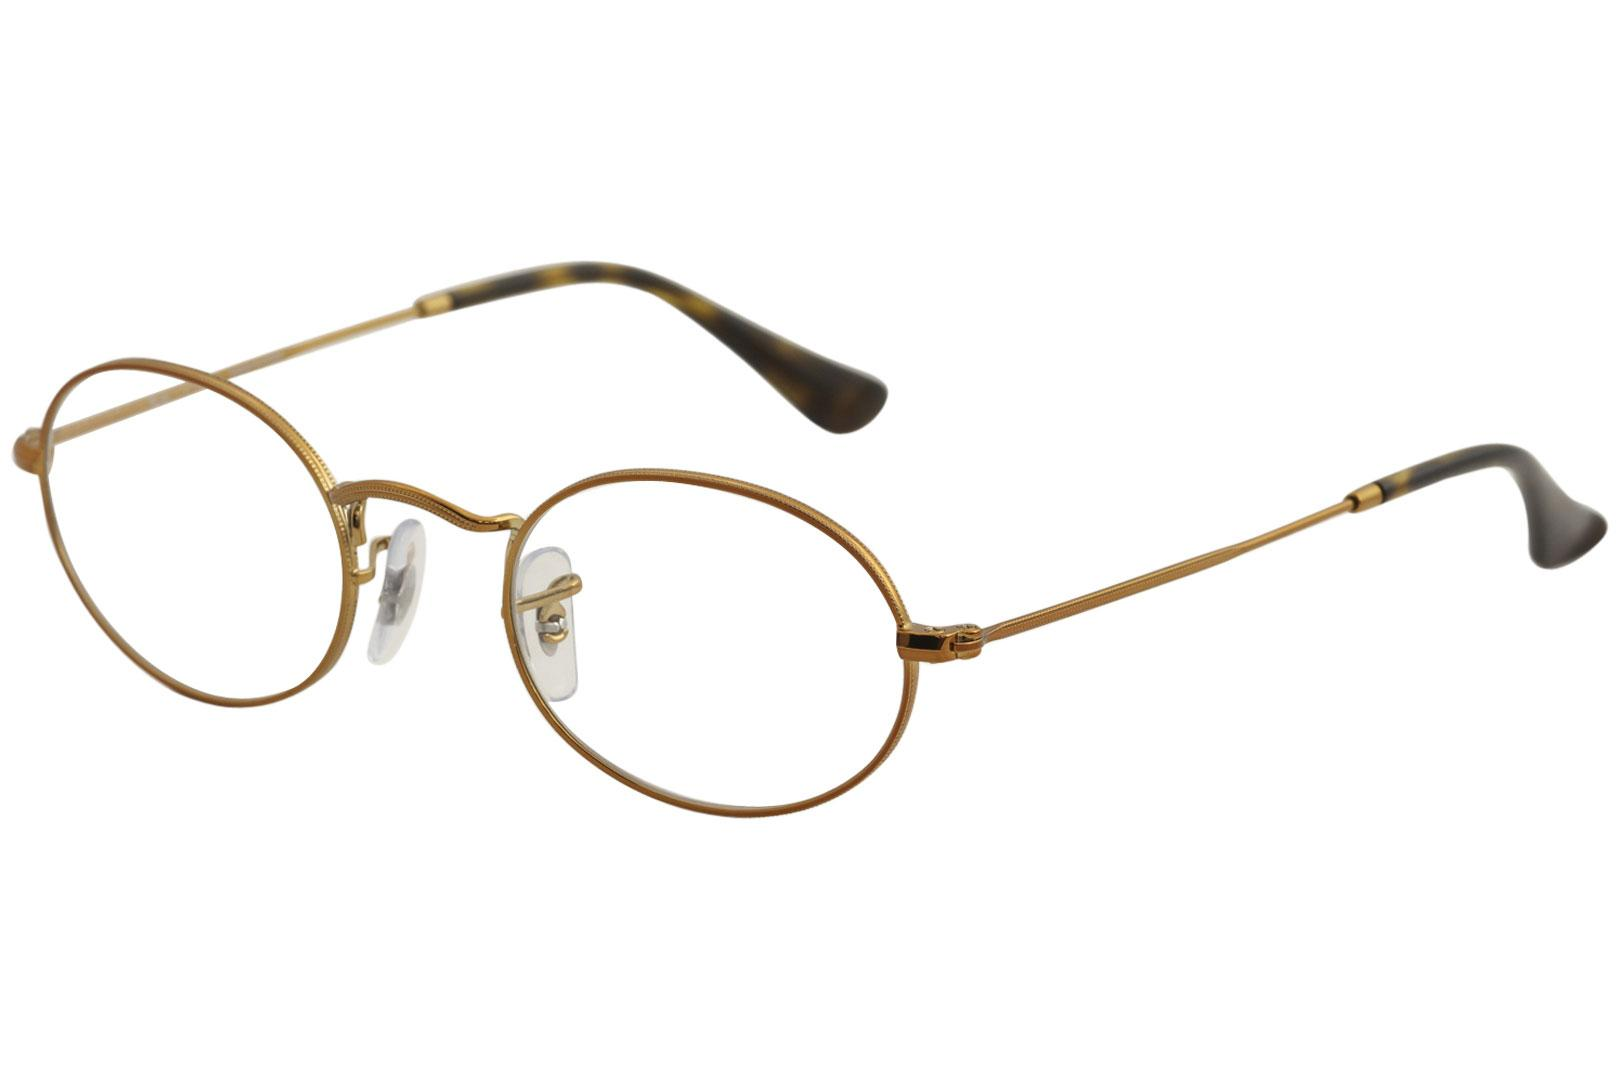 3596c2dd60862 Ray Ban Men s Eyeglasses RB3547V RB 3547 V Full Rim RayBan Optical Frame